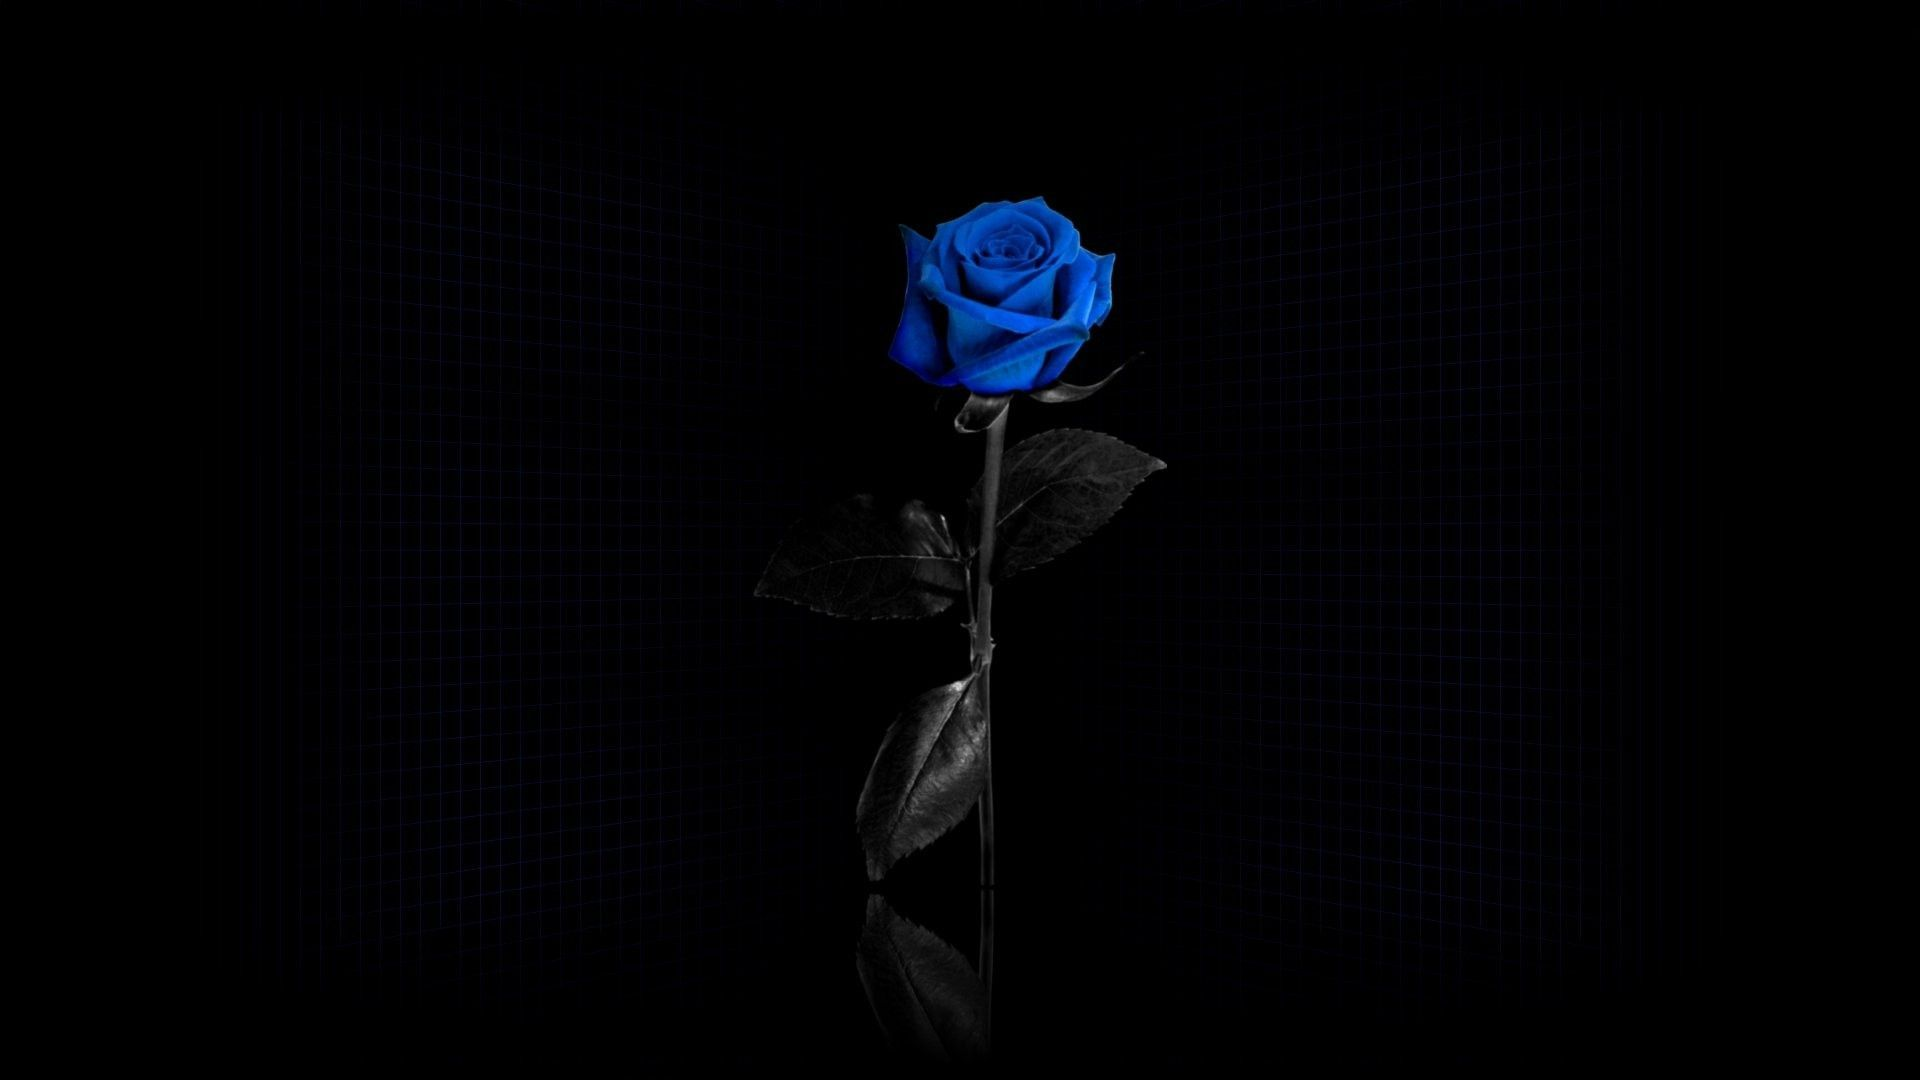 Blue Rose Wallpapers Wallpaper Cave Blue Roses Wallpaper Flowers Black Background Black And Blue Wallpaper